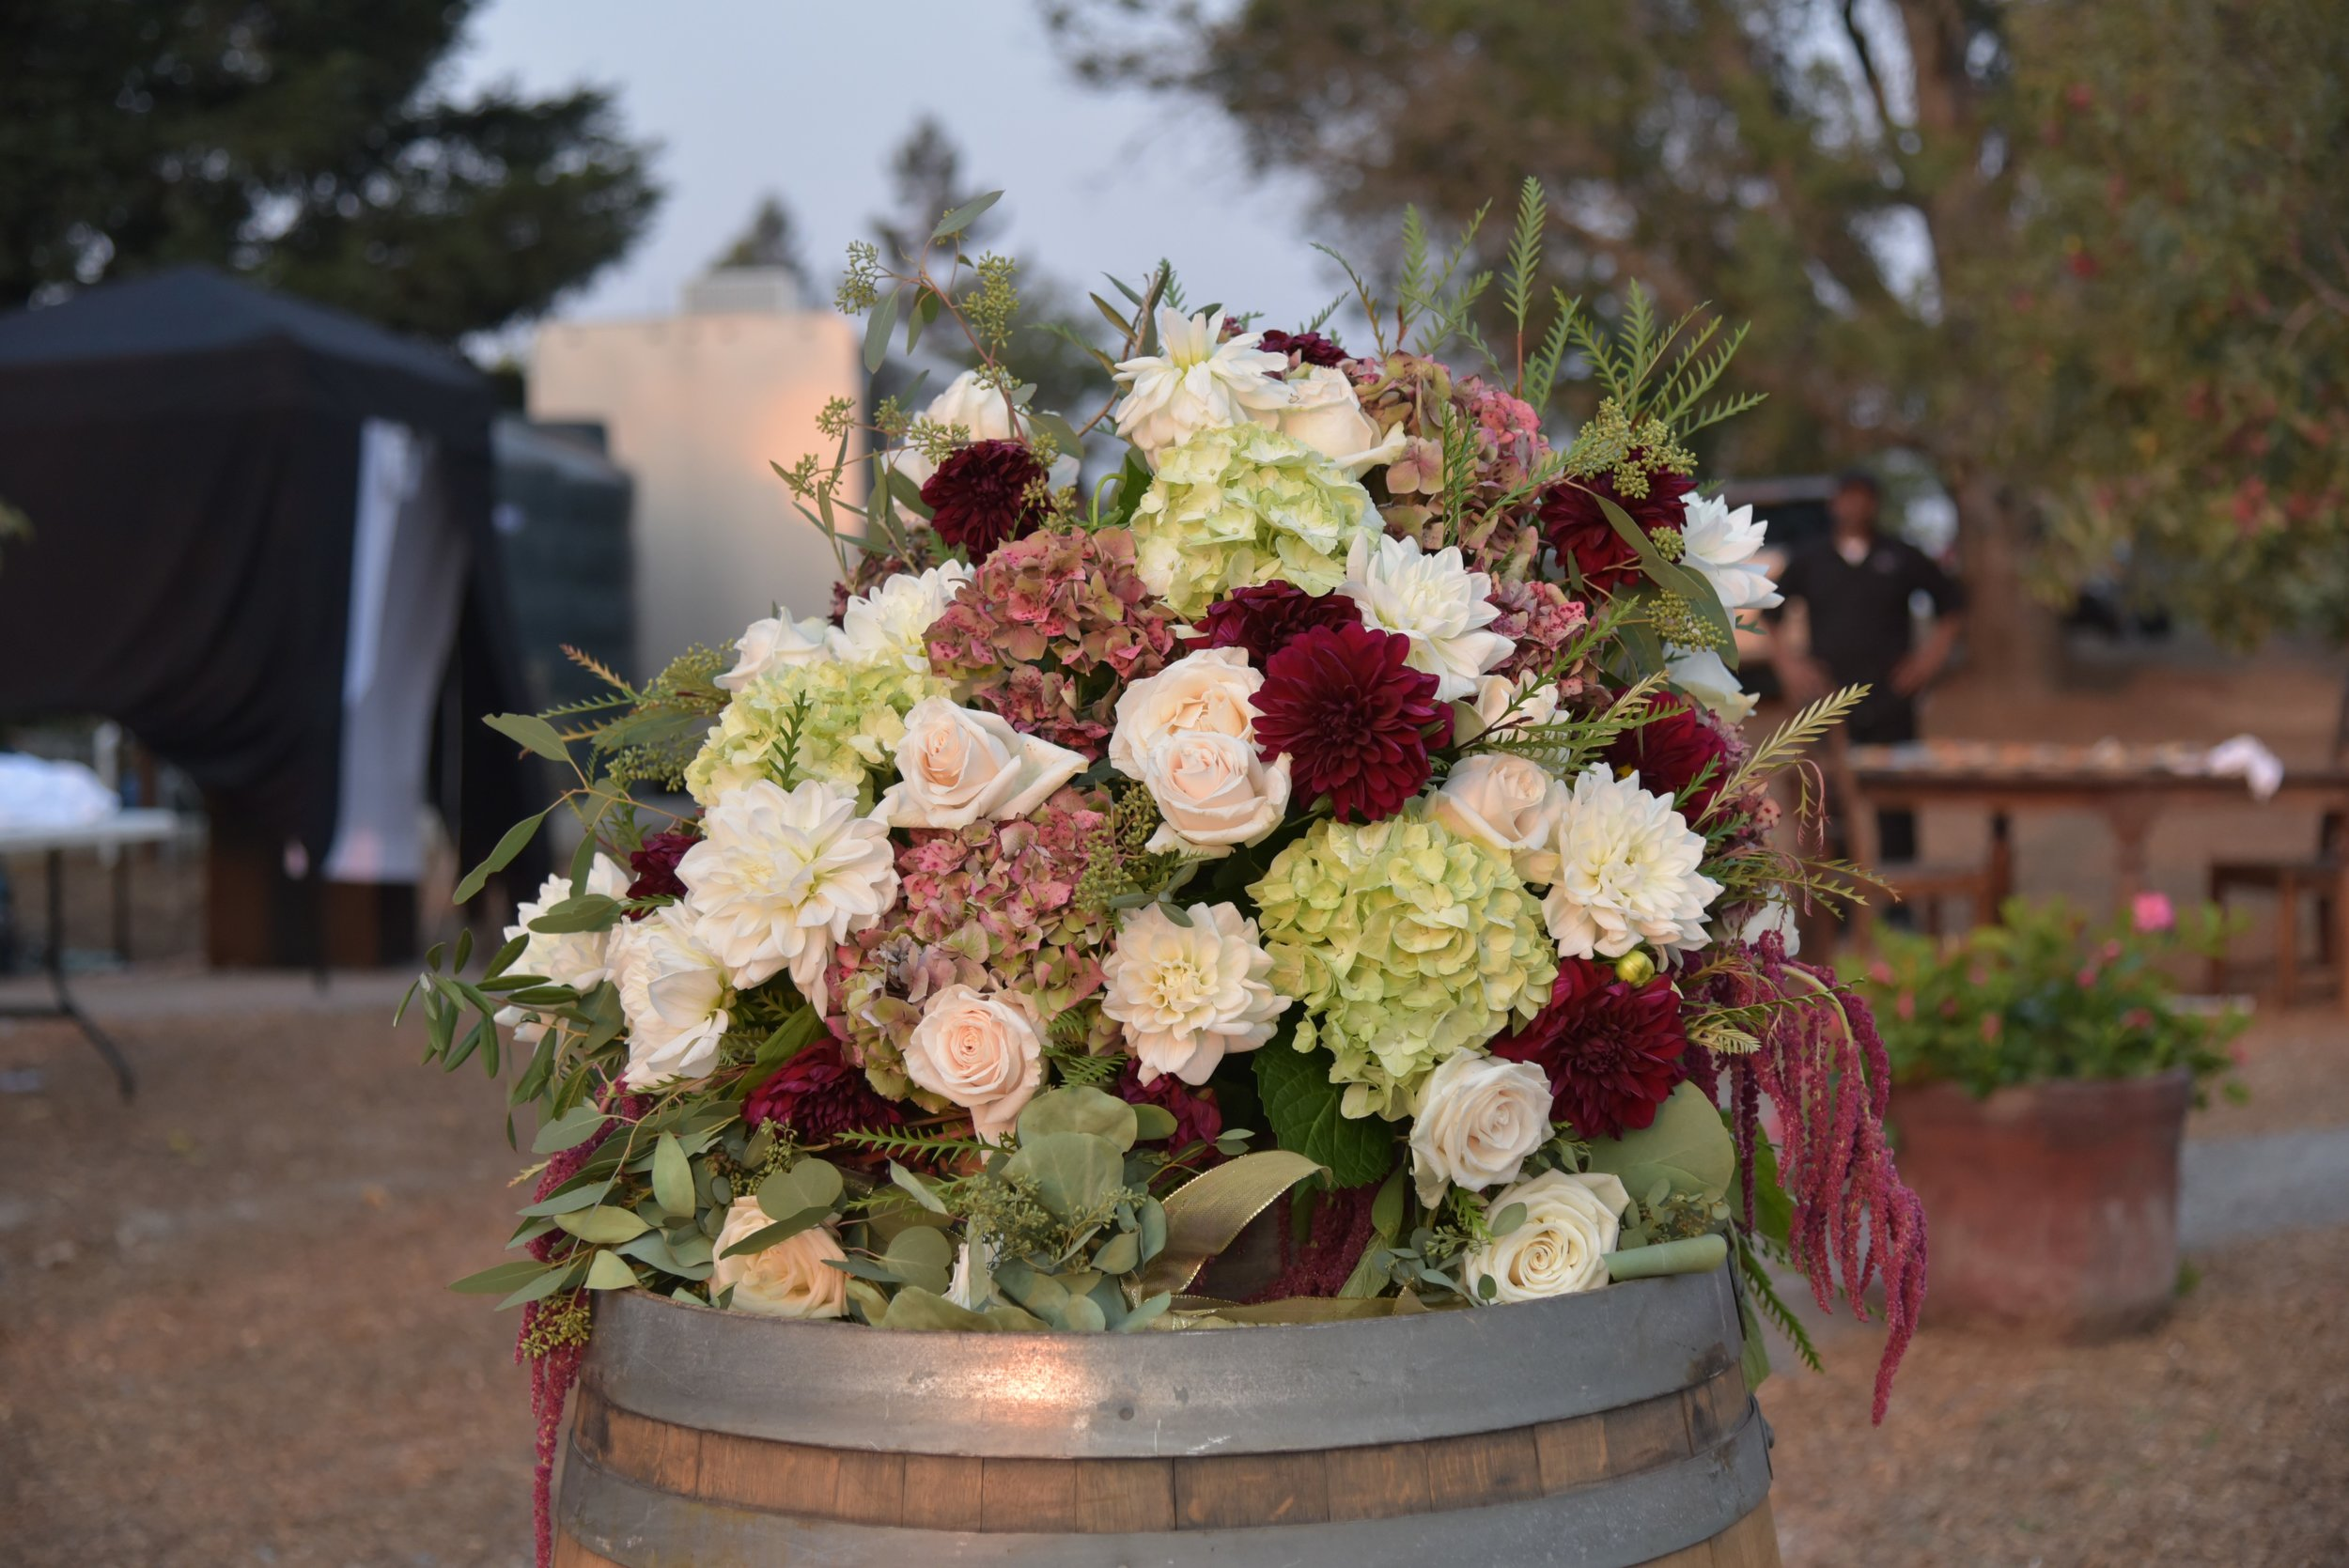 Sebastopol ranch wedding, wine barrel topper in contrasting colors of green hydrangea, burgundy dahlia and blush roses.